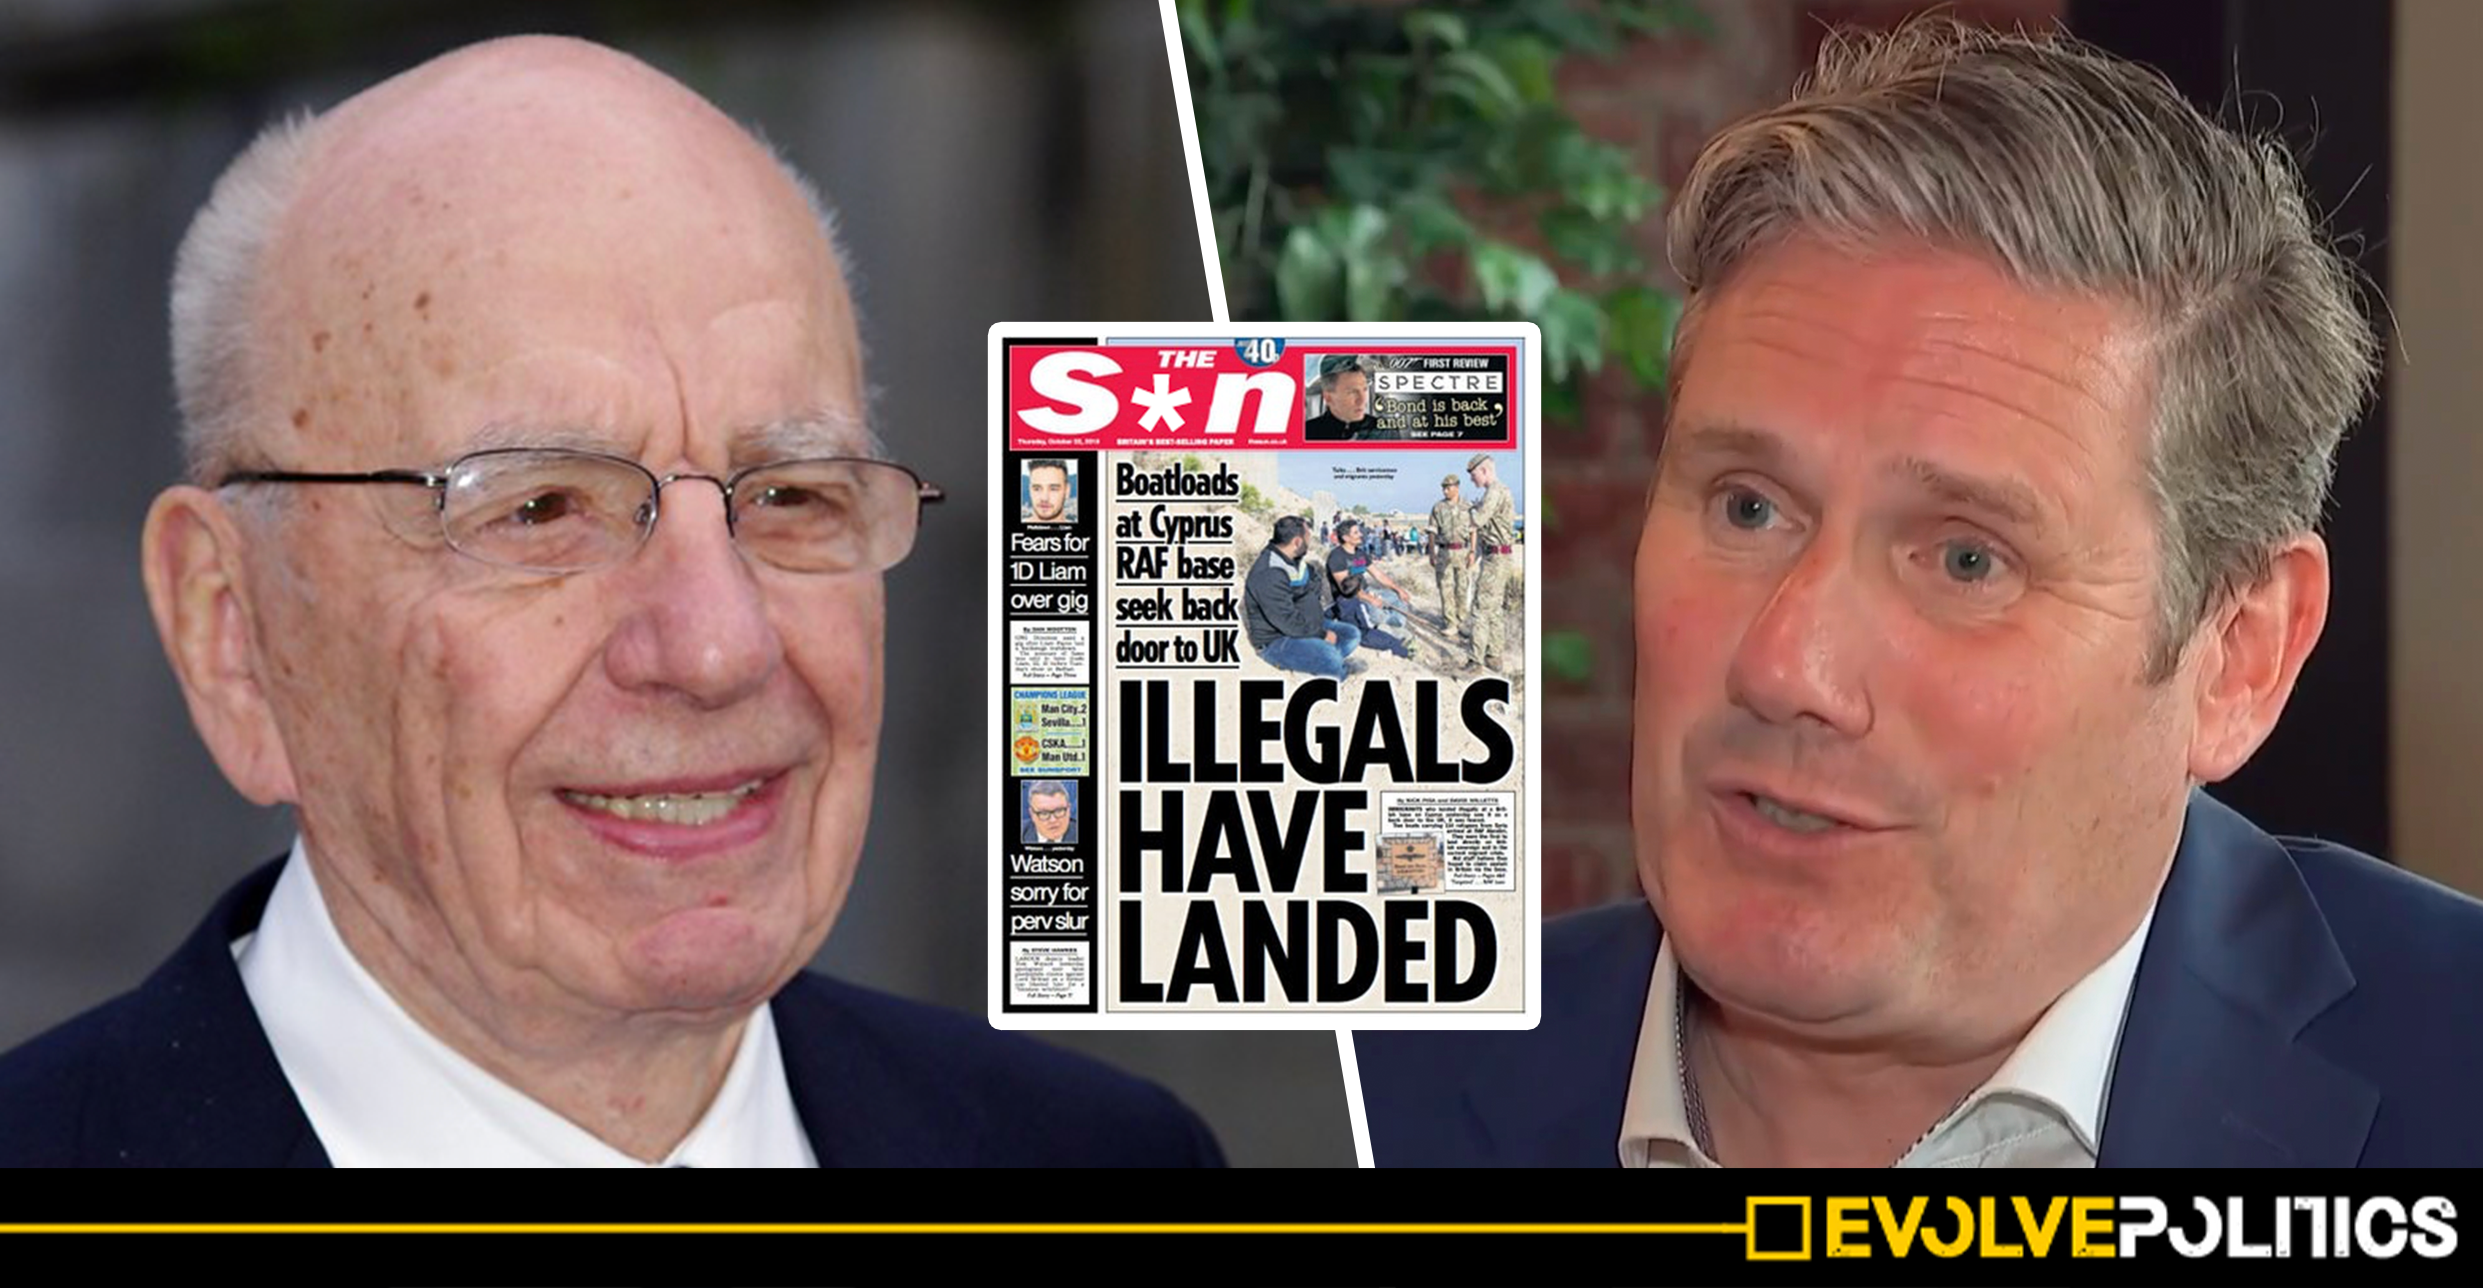 Keir Starmer says he wants The S*n to endorse him and The Labour Party